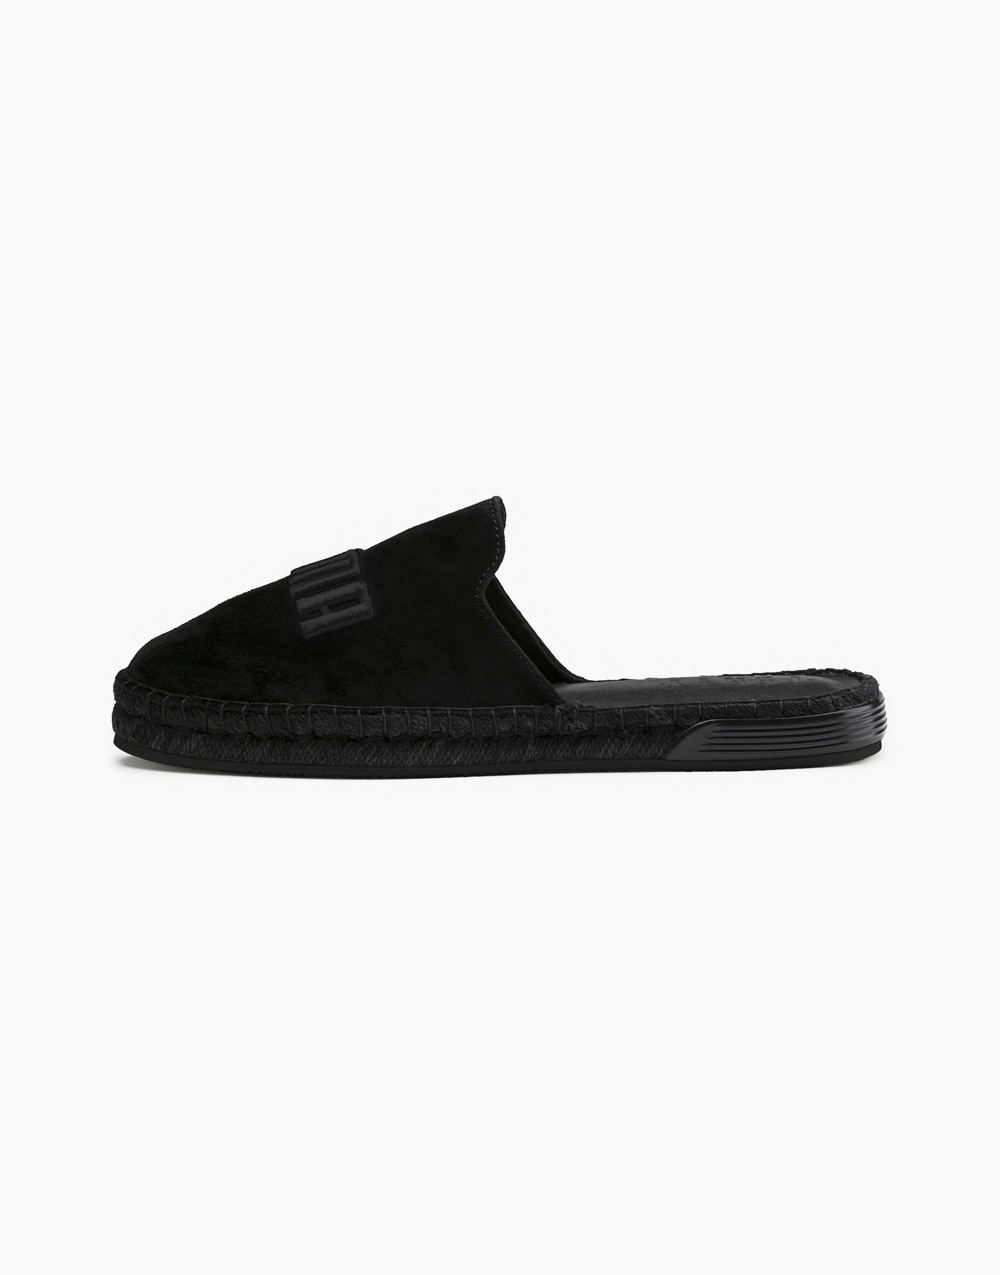 Fenty Espadrille in Black by Puma | US 5.5